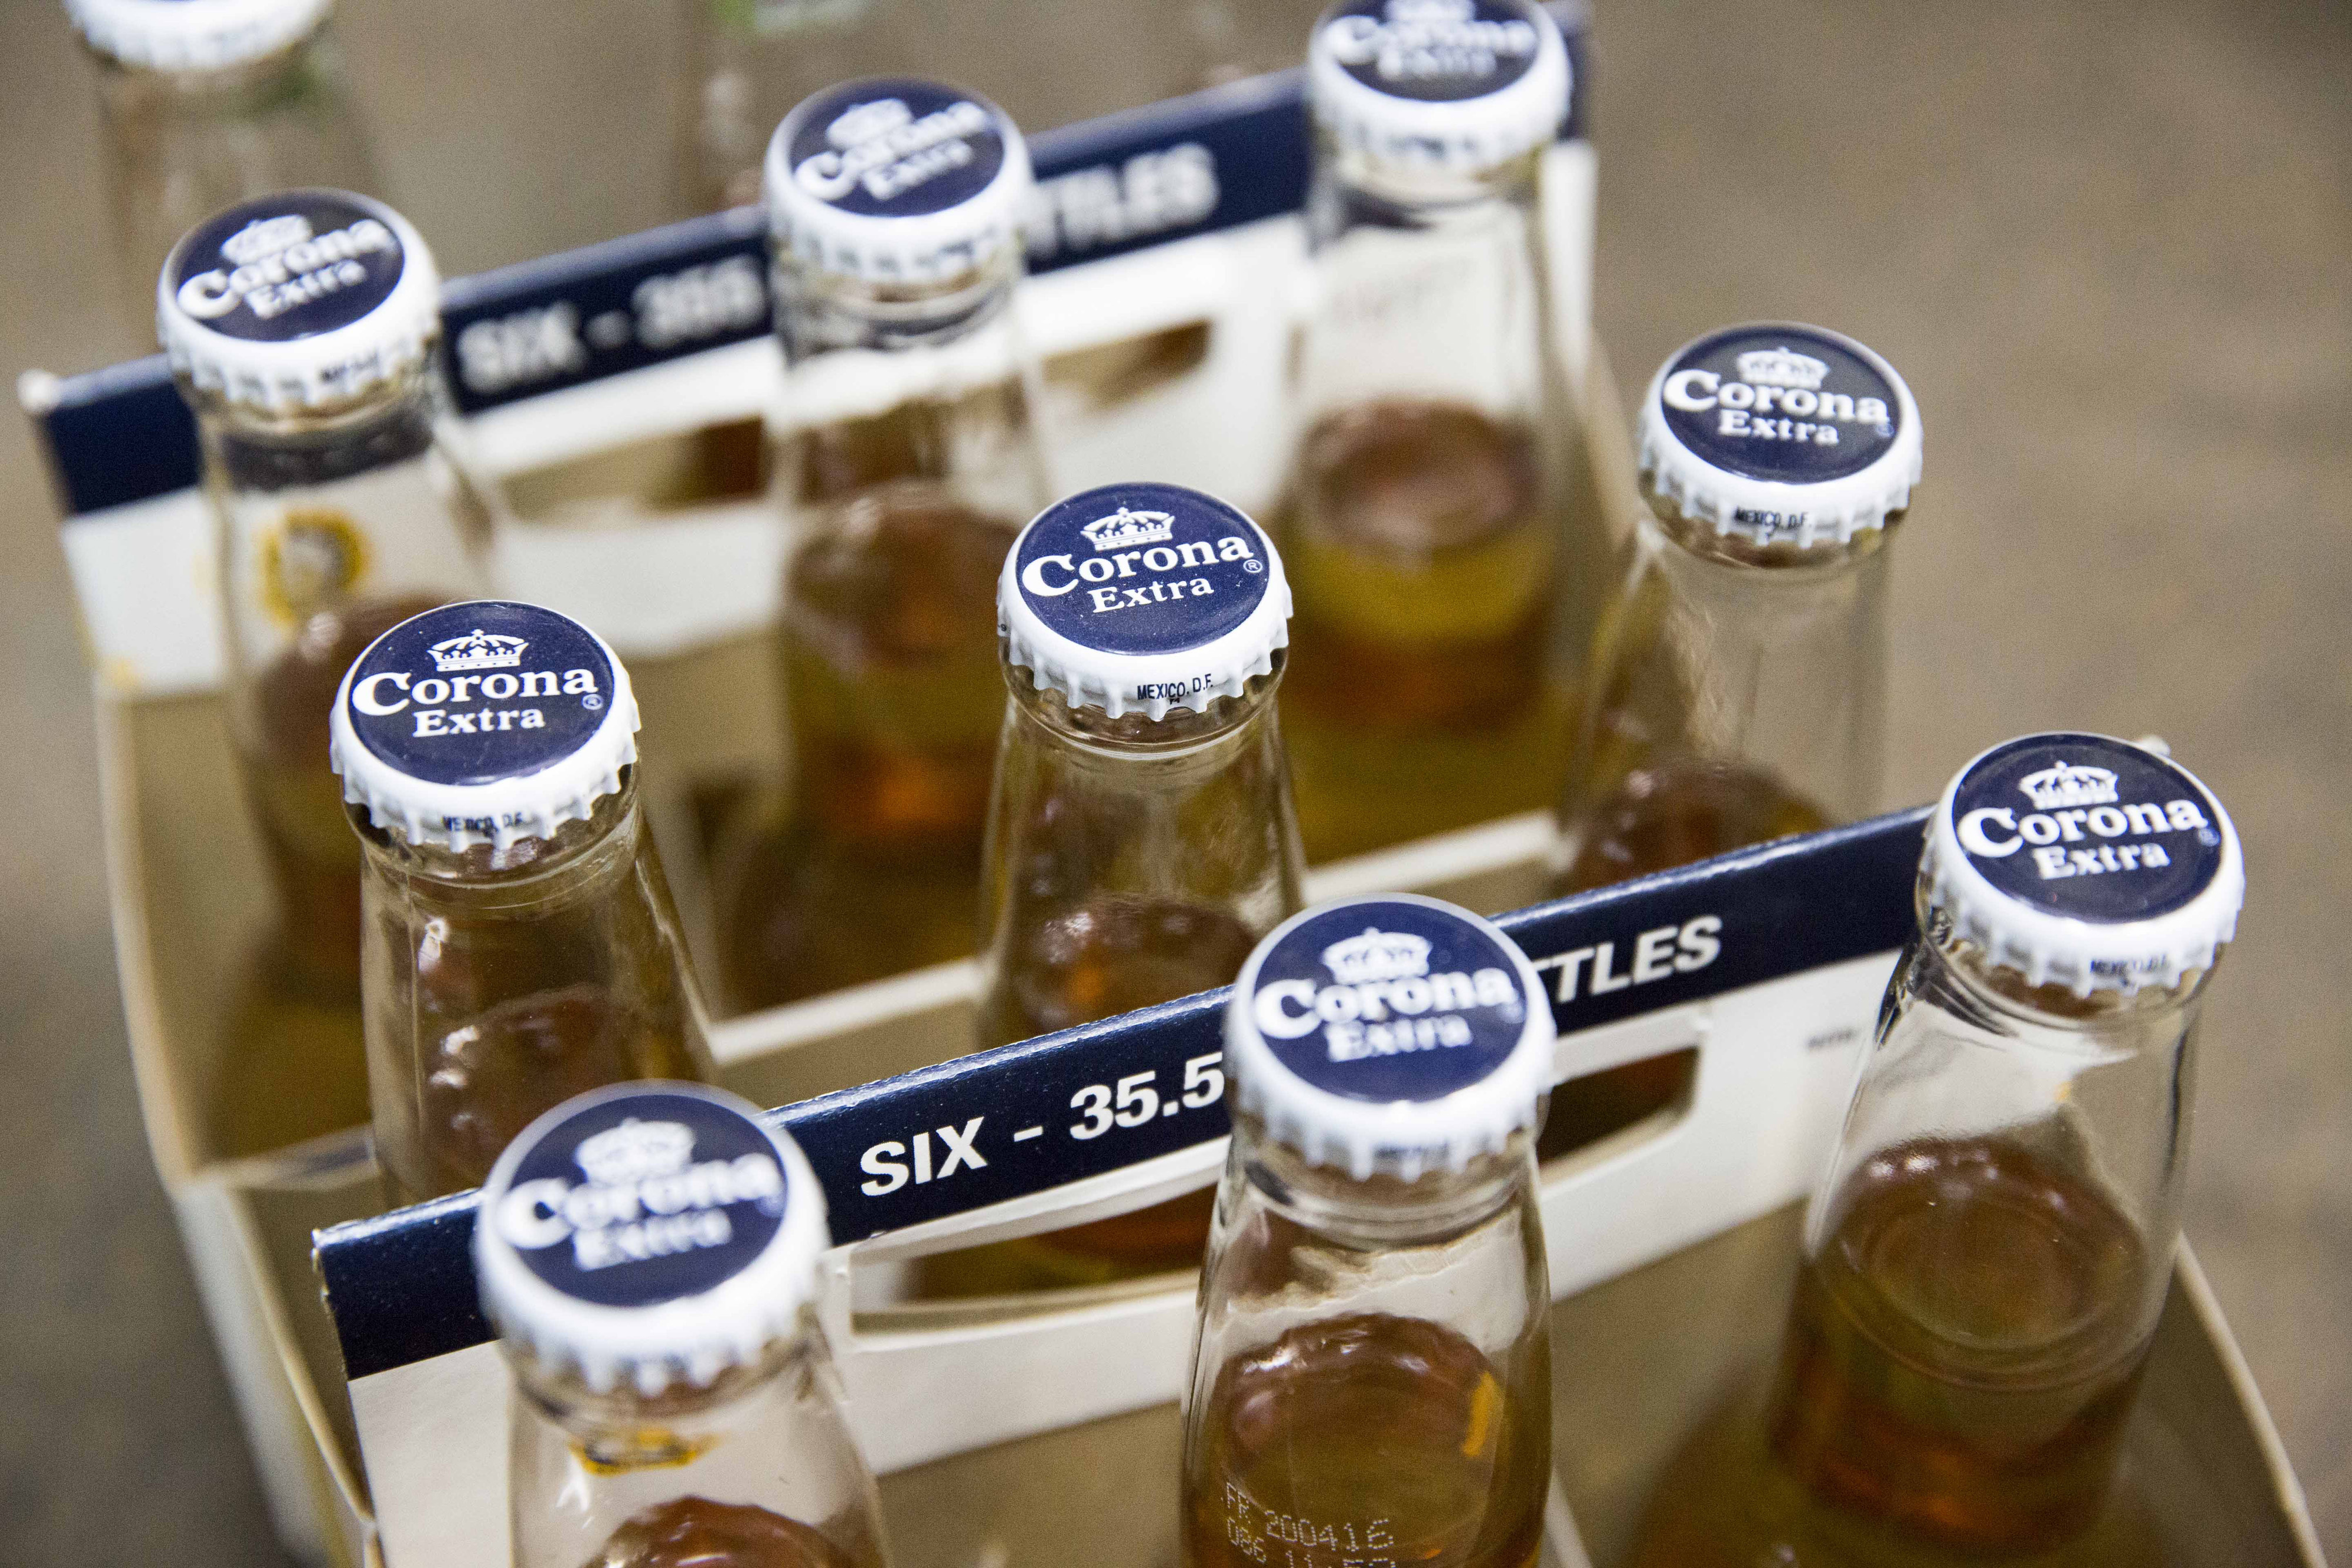 Six packs of bottled Corona beer, produced by Anheuser-Busch InBev NV, sit on display in a store in Paris, France, on Thursday, Oct. 15, 2015. AB Inbev is planning to sell bonds worth as much as $55 billion to finance its $106 billion takeover of SABMiller Plc, setting a record for debt issuance to fund a corporate acquisition, according to people familiar with the matter.